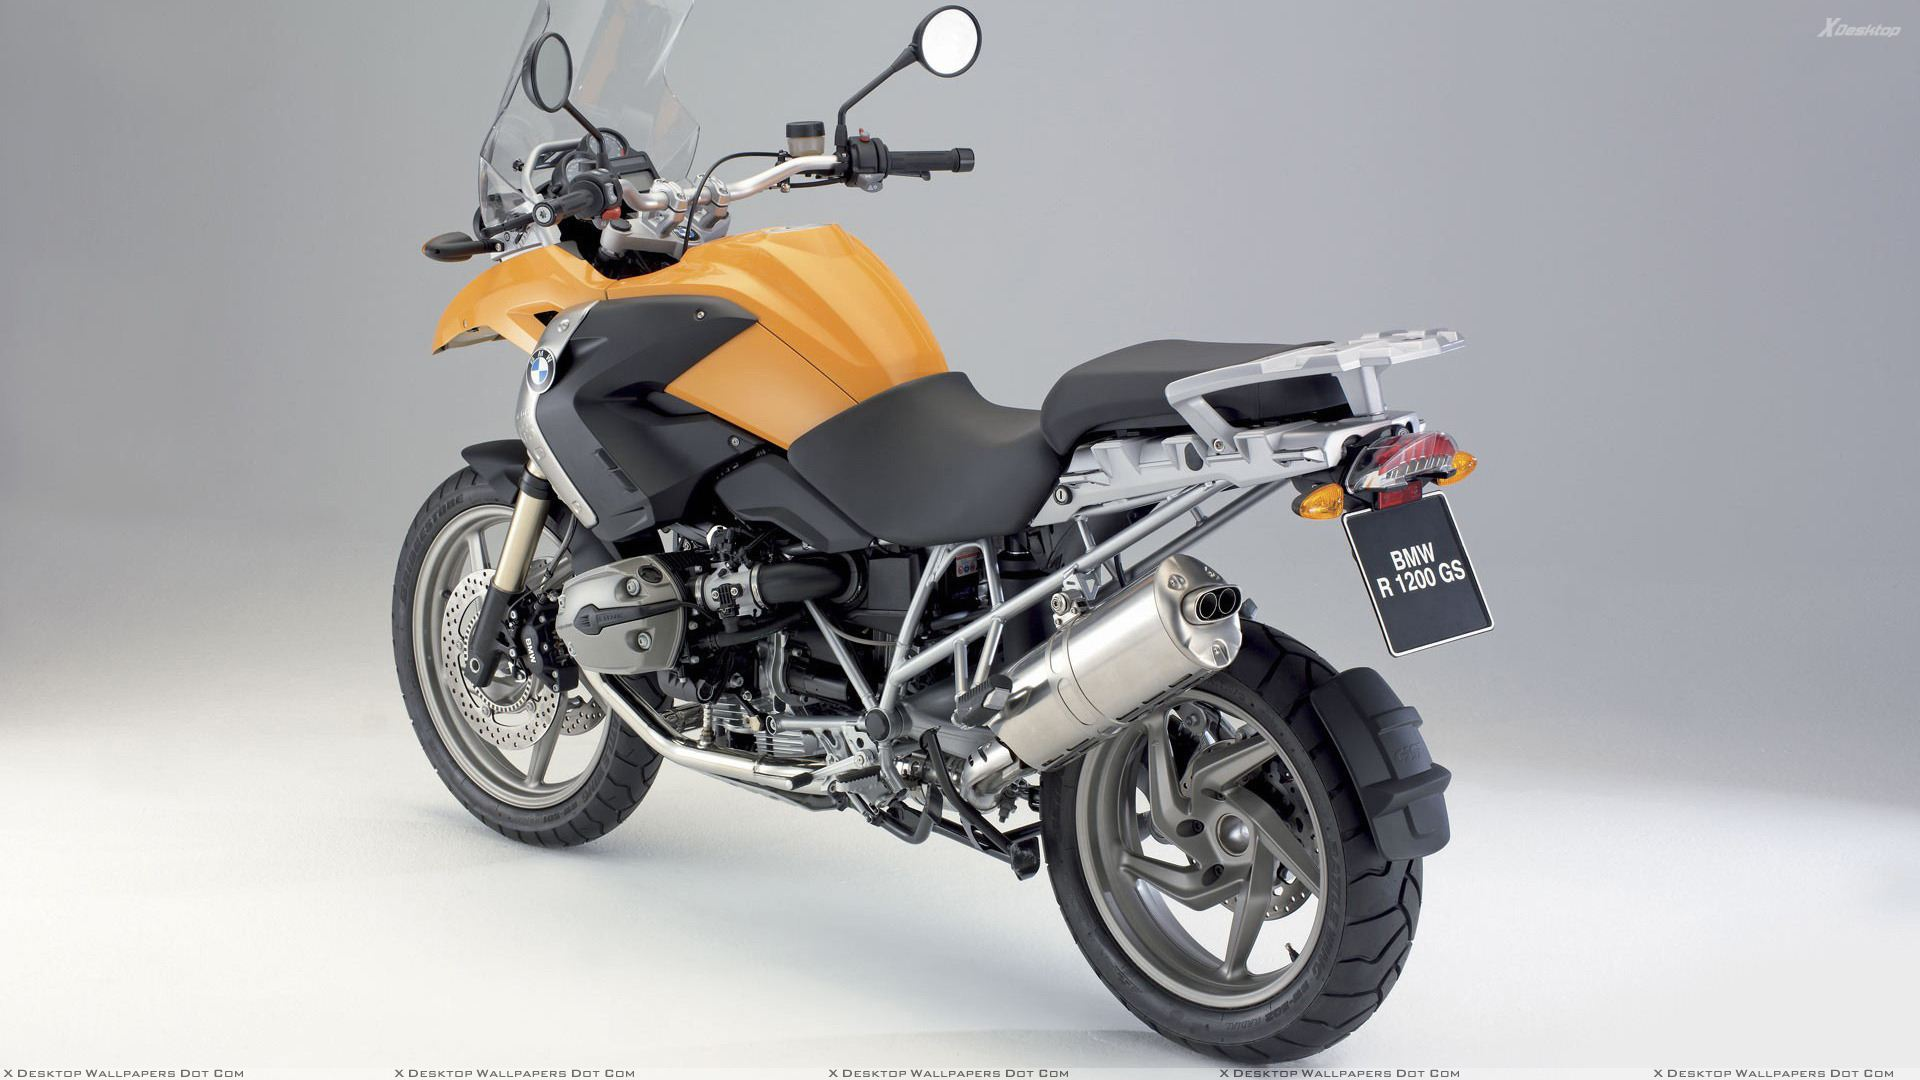 Bmw R1200 Gs In Yellow Side Back Pose Wallpaper